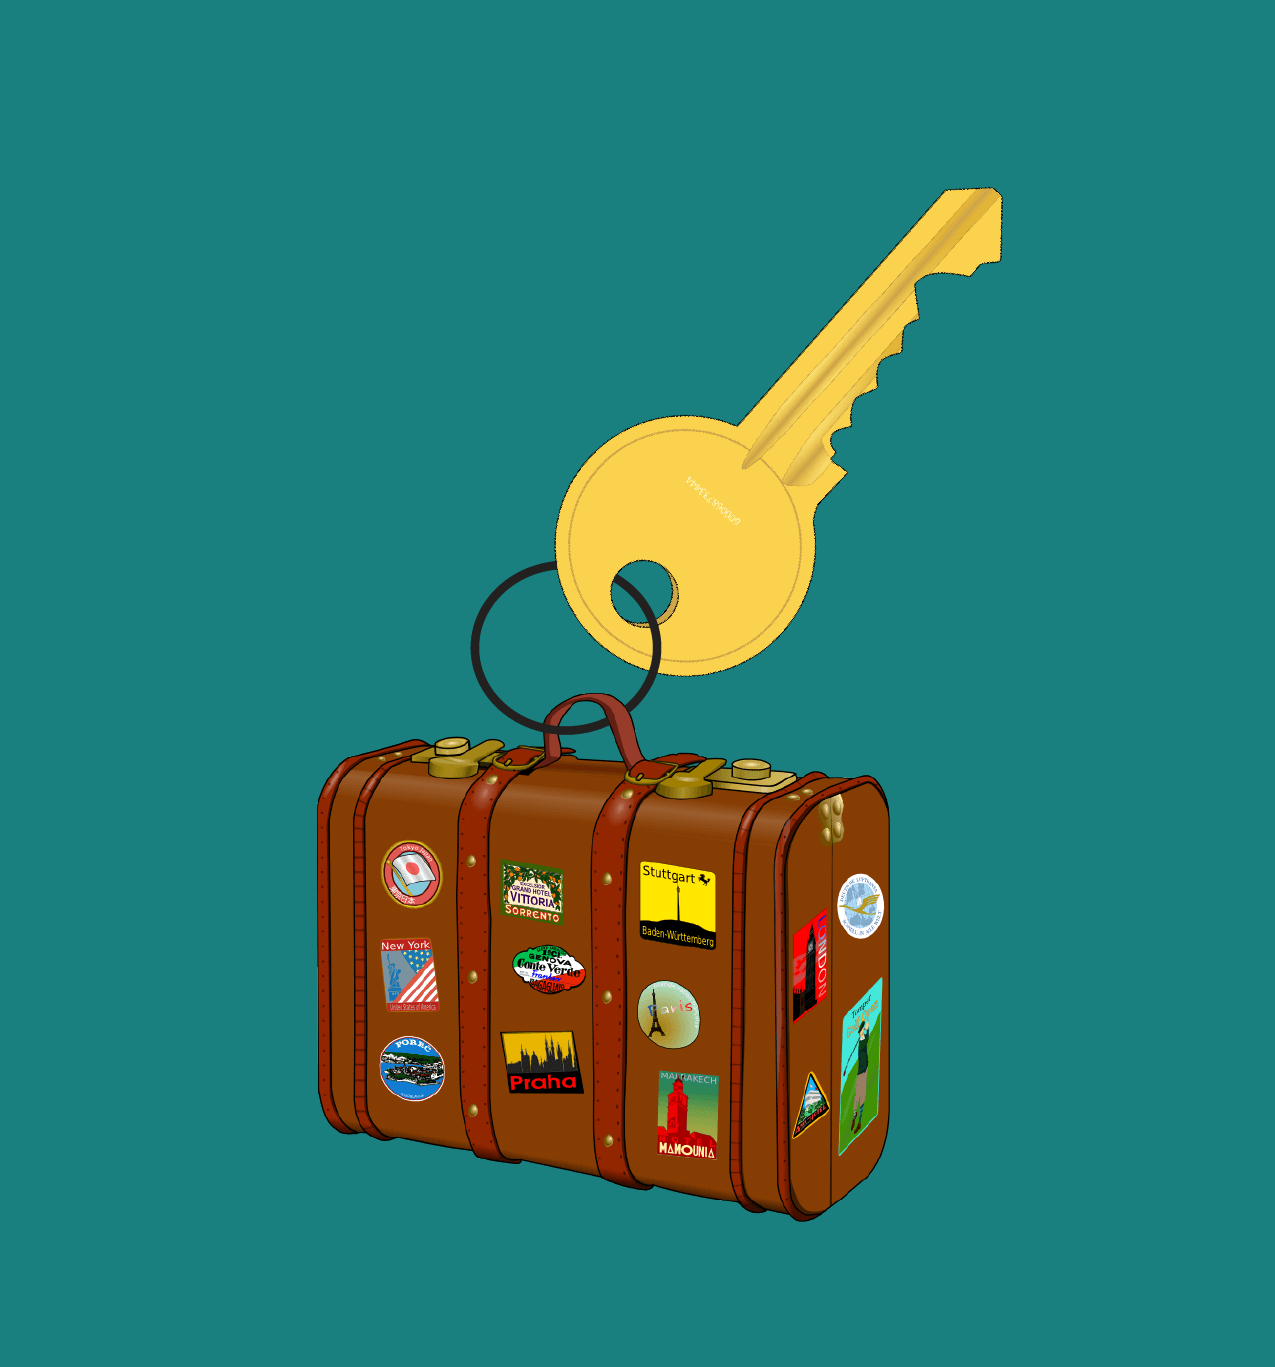 Short term rental image:  a suitcase and key